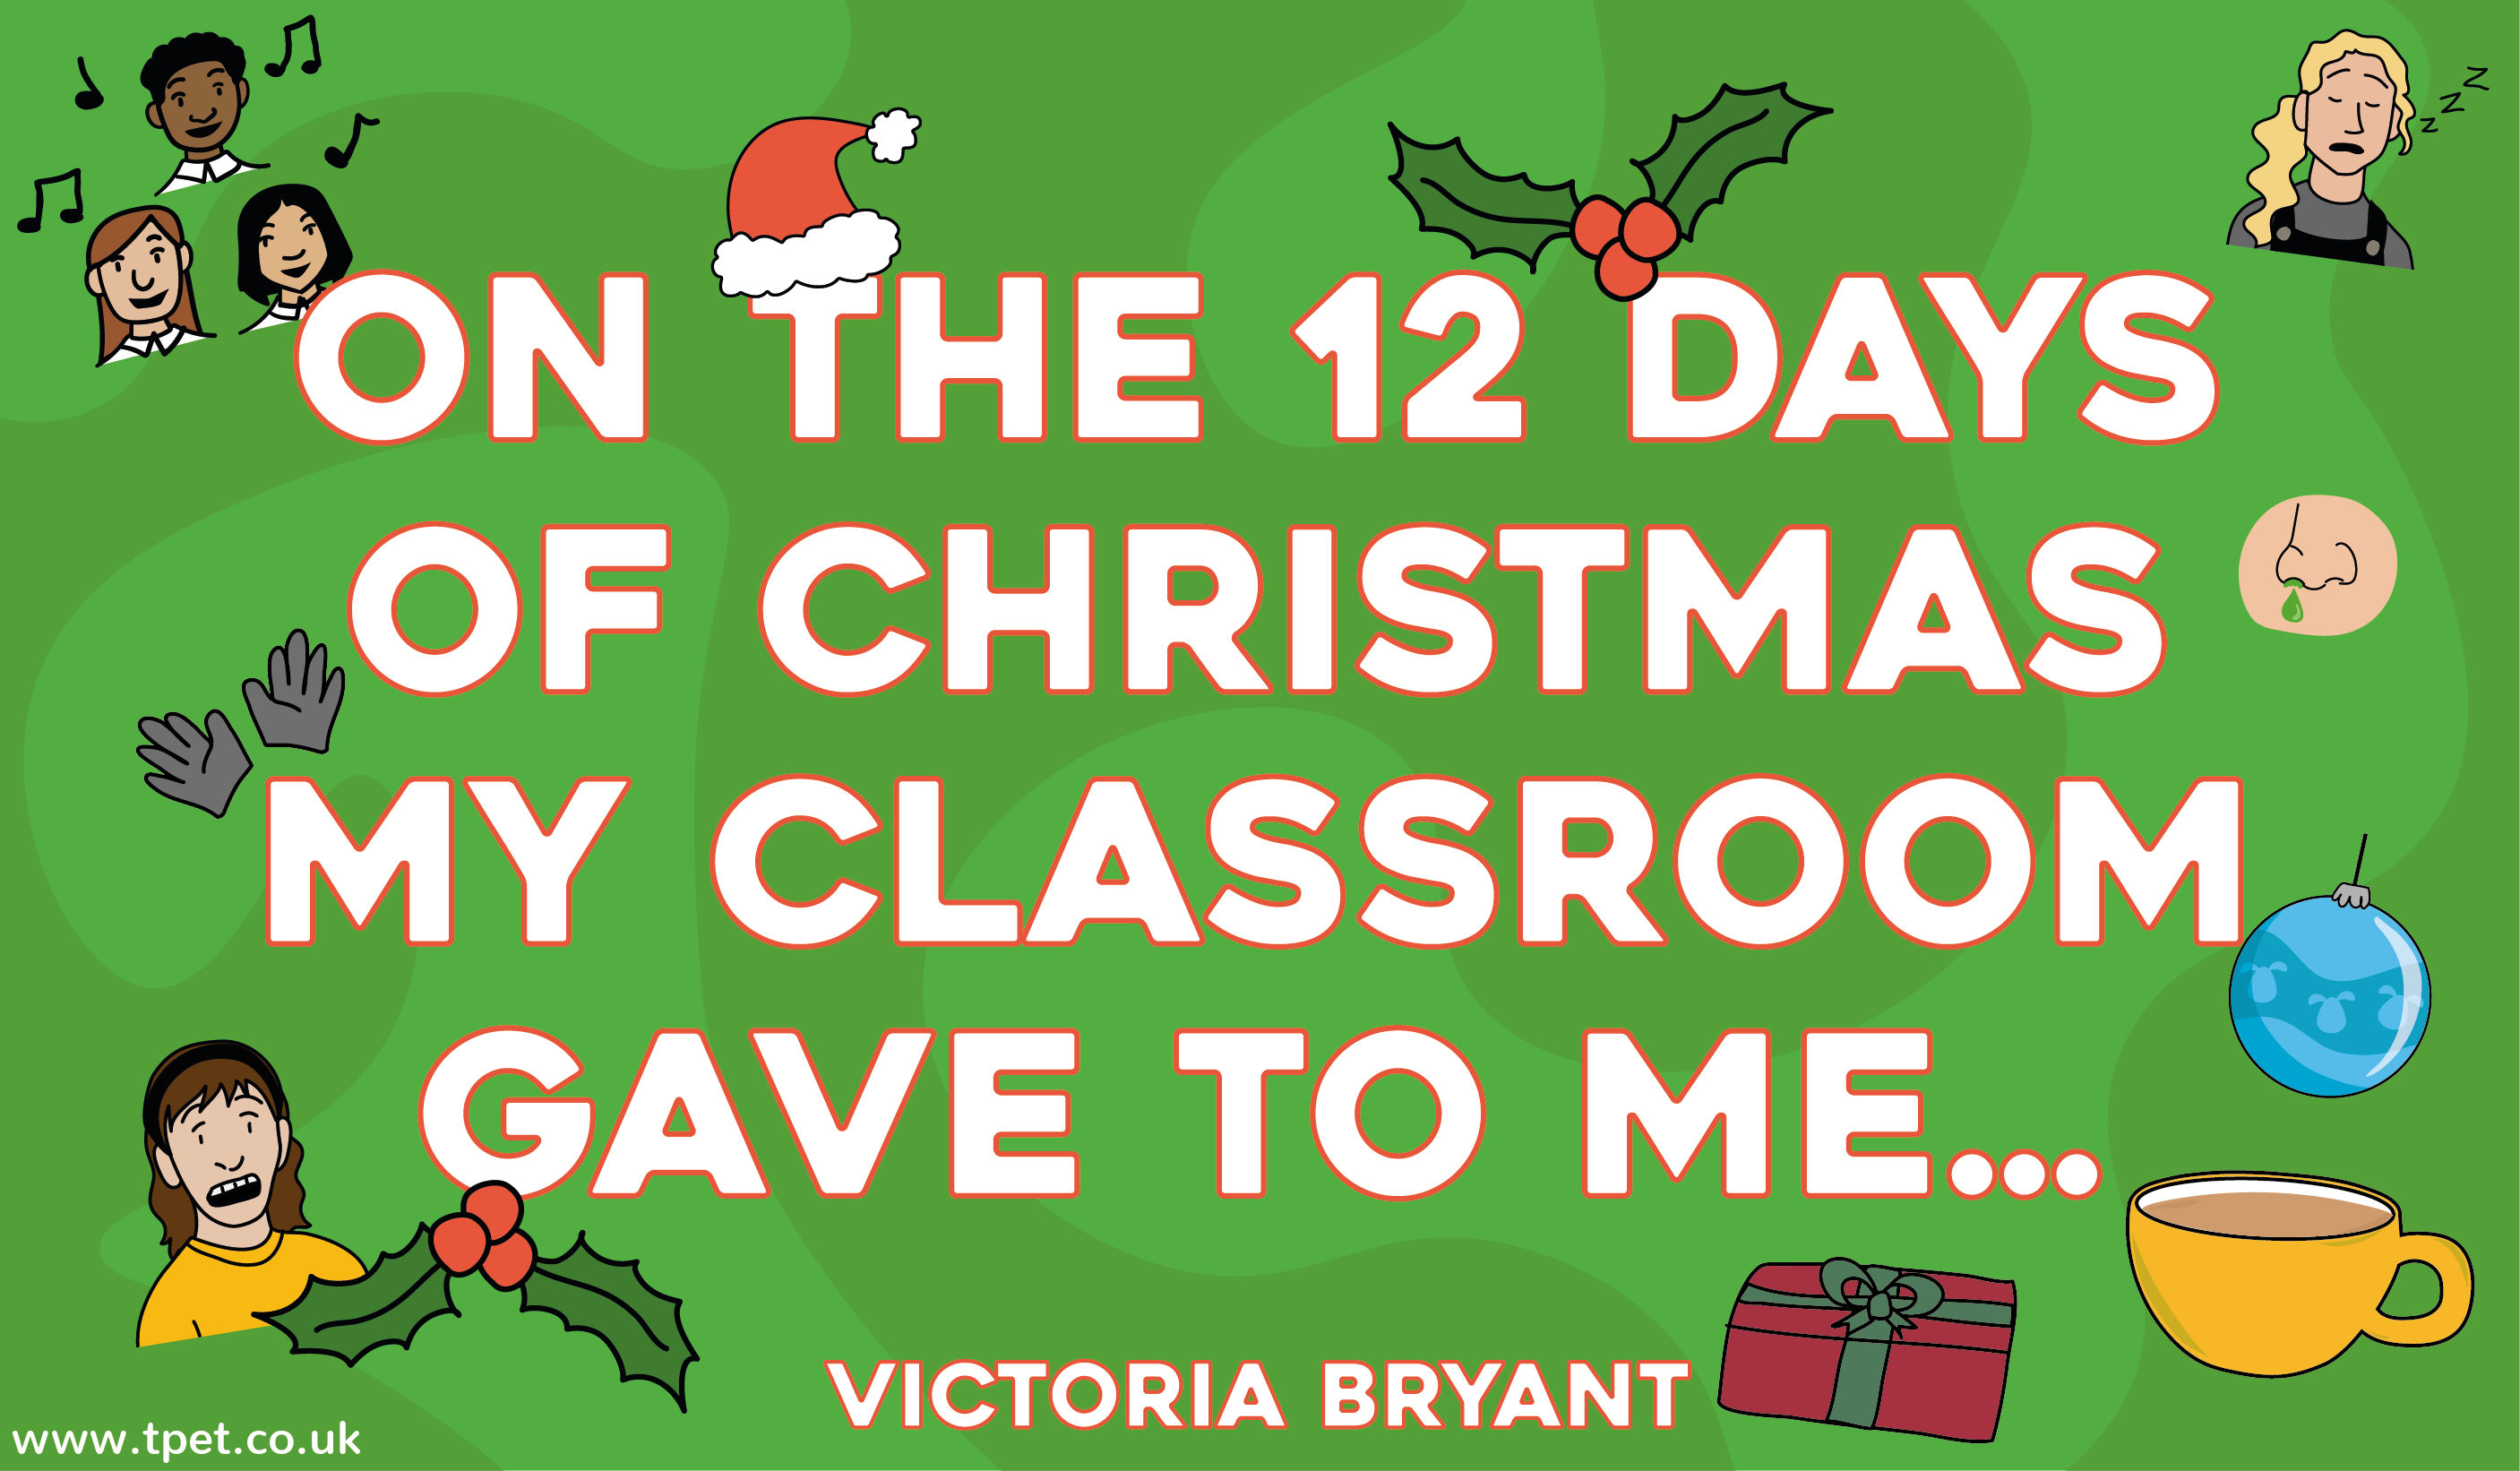 On The 12 Days of Christmas my Classroom Gave to Me…